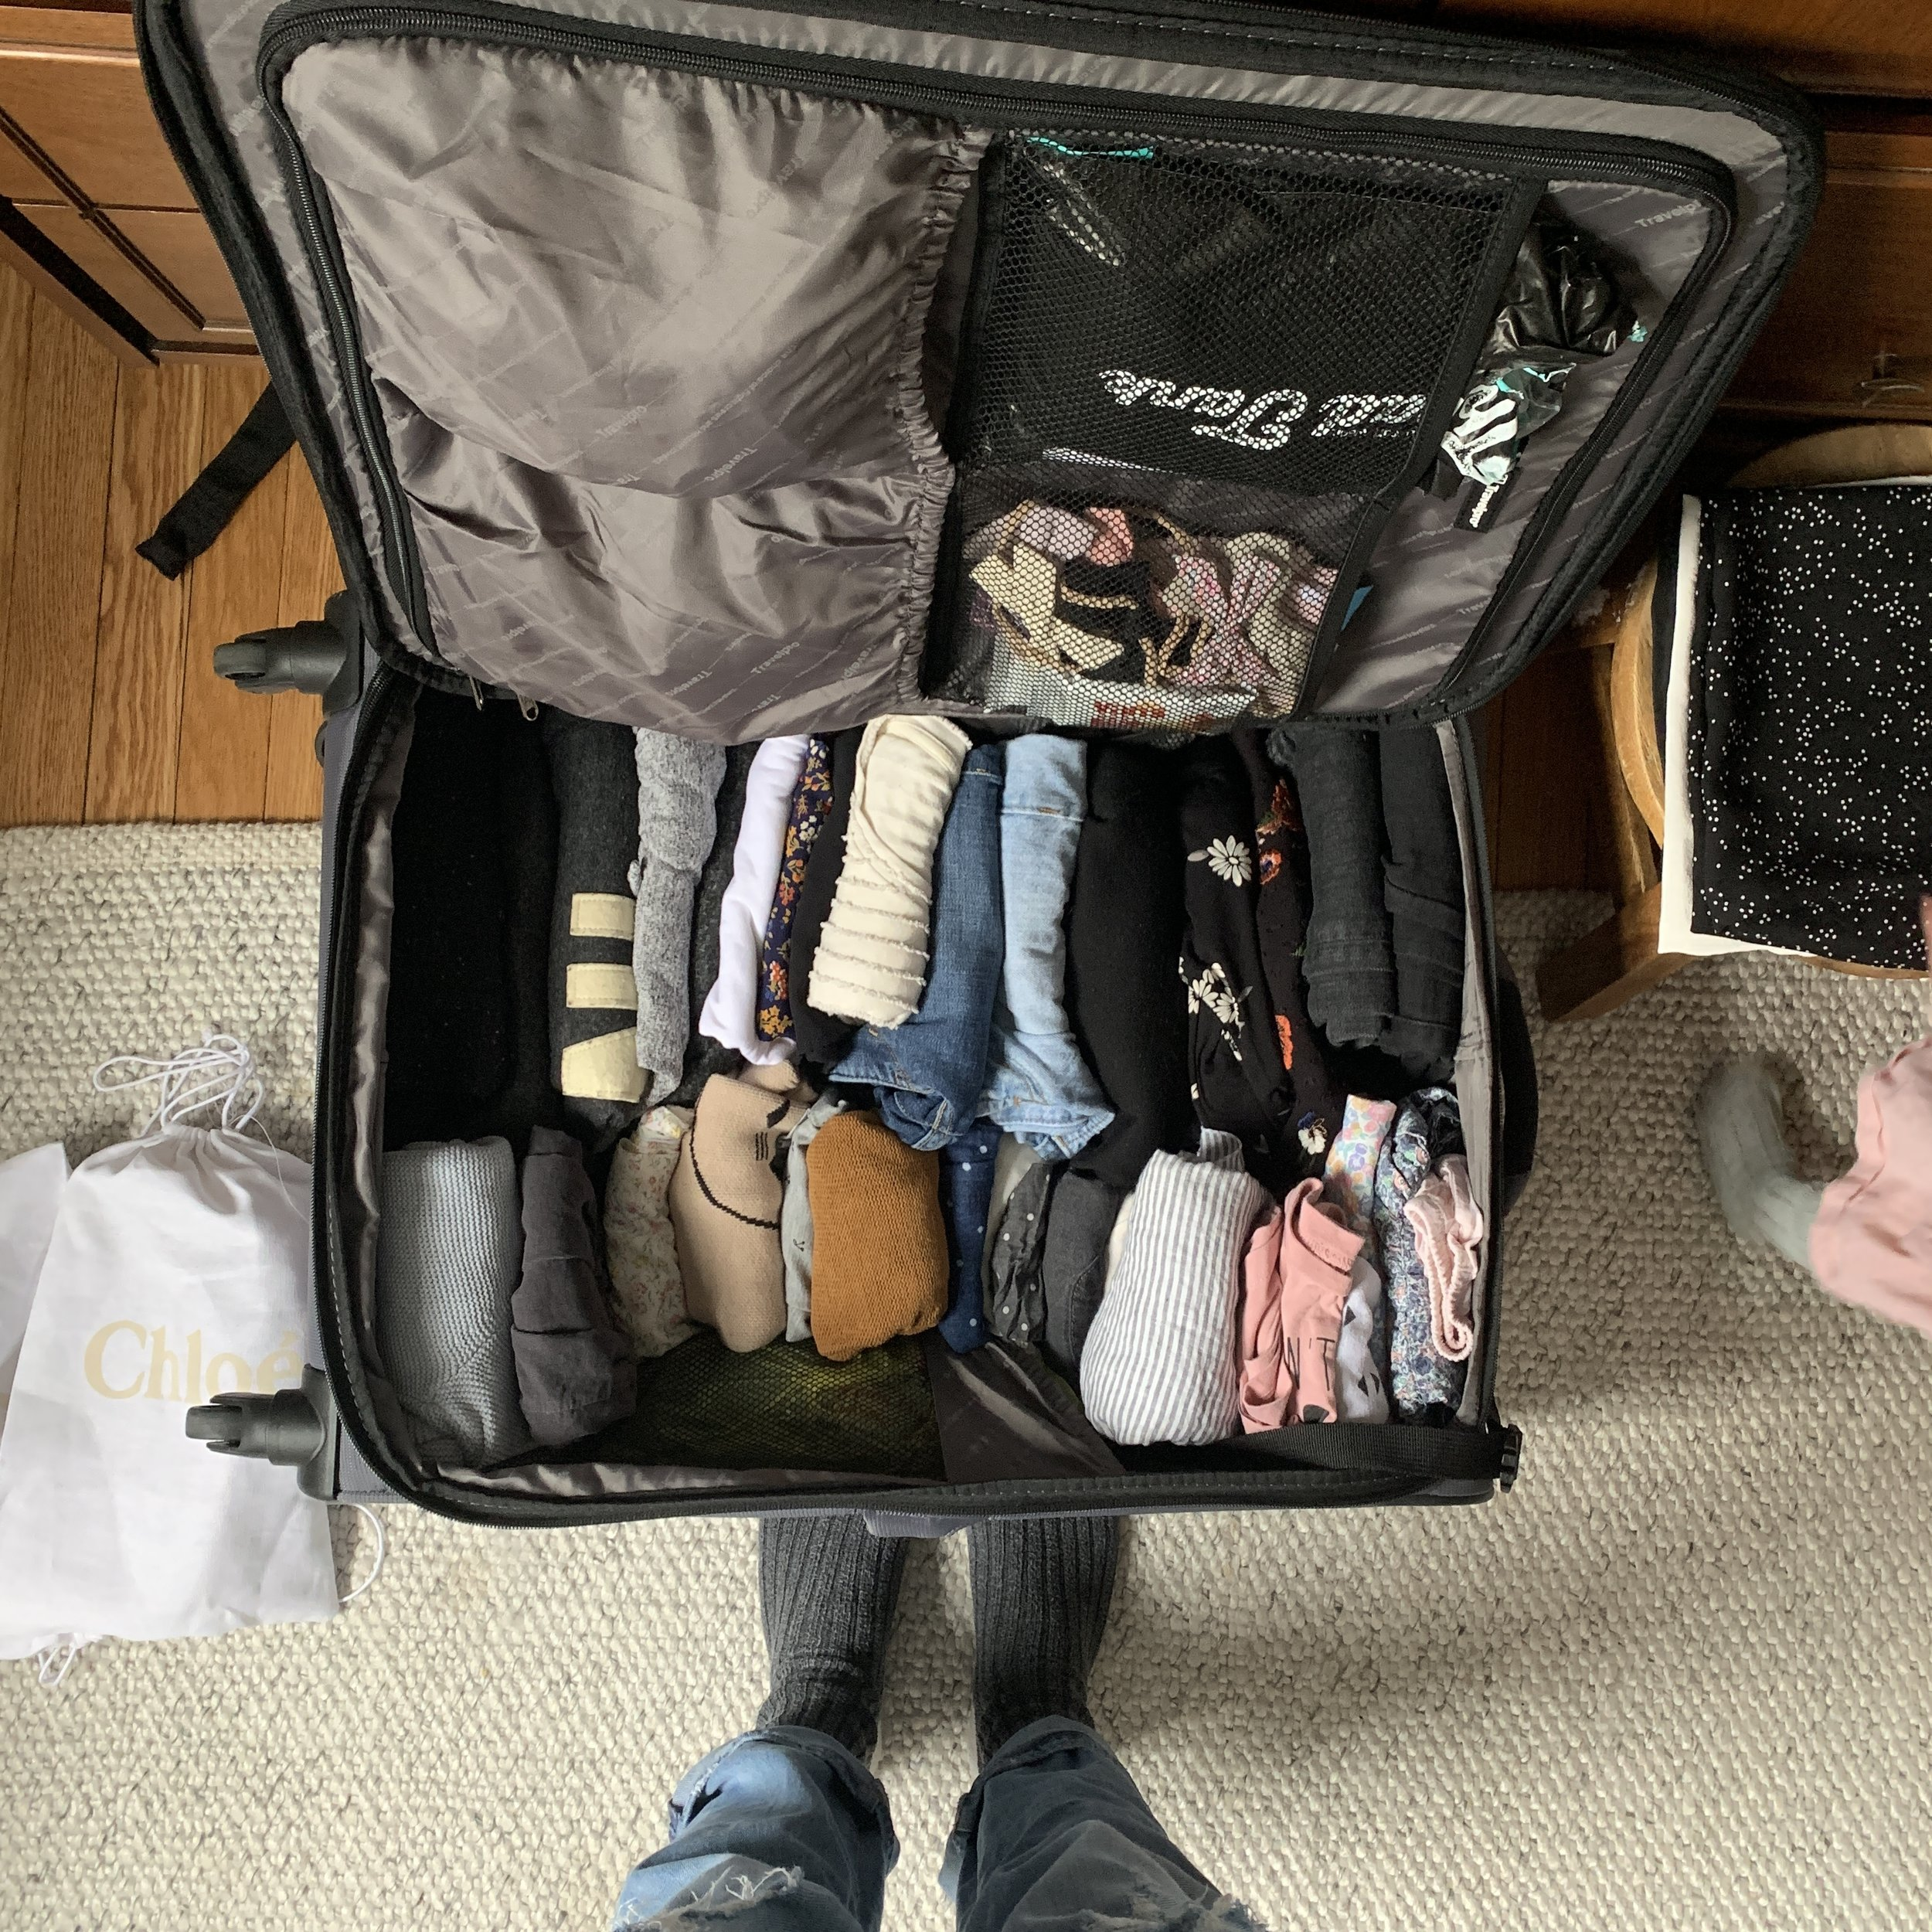 Packing tips for your european vacation with kids